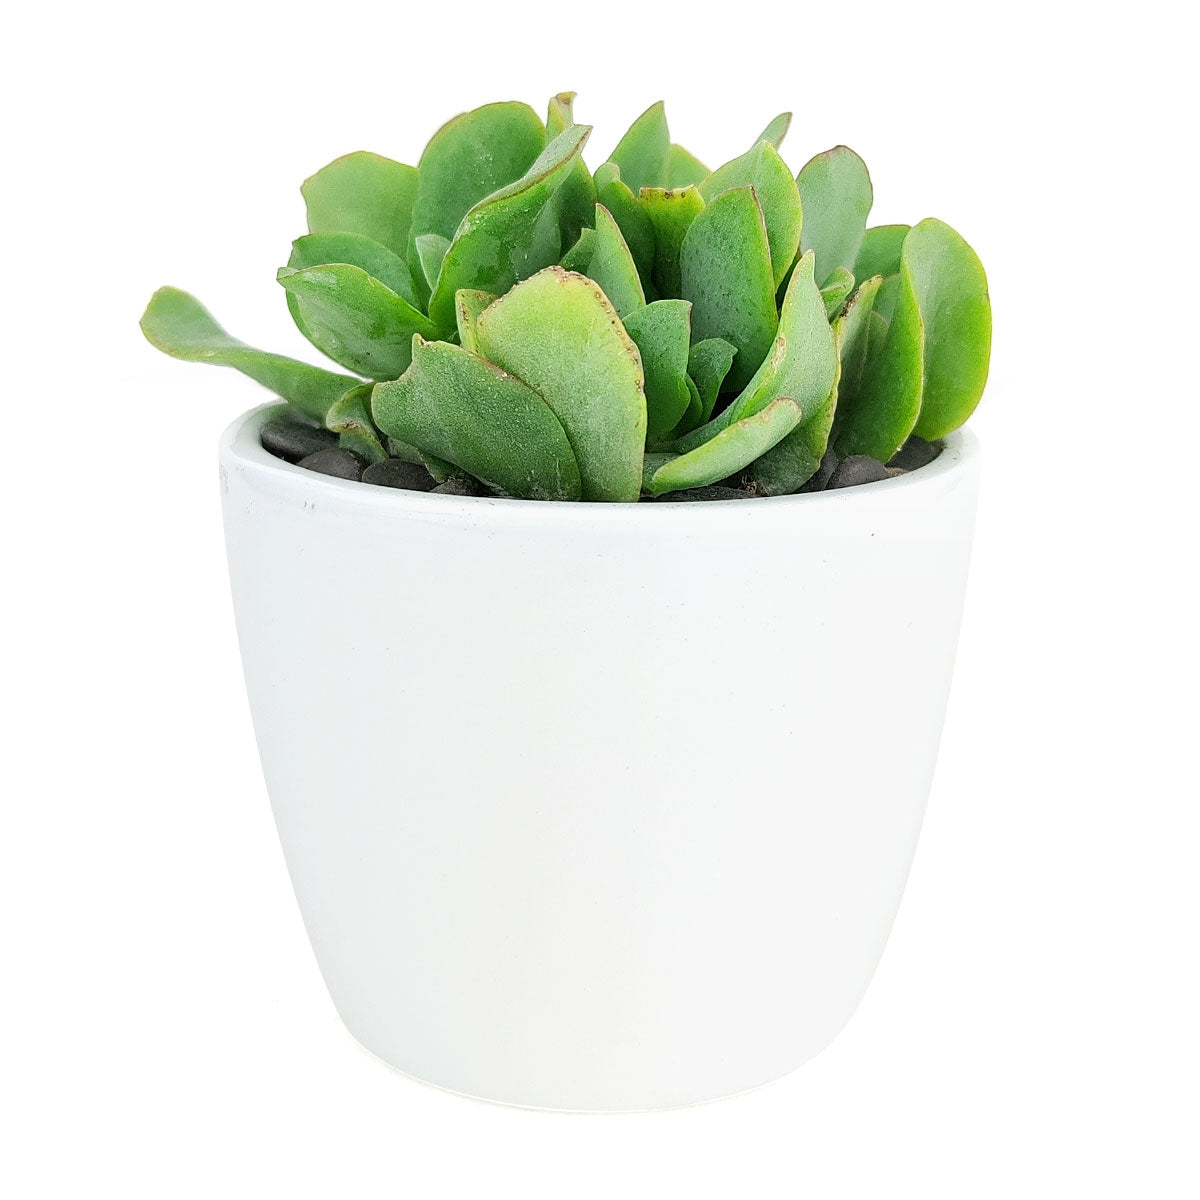 Simple Ceramic Pot for sale, White Cactus Ceramic Pot, Modern Pot Decor for Home or Office, High Quality Ceramic Pot for Plants and Flowers, Modern Style Indoor Ceramic Planter